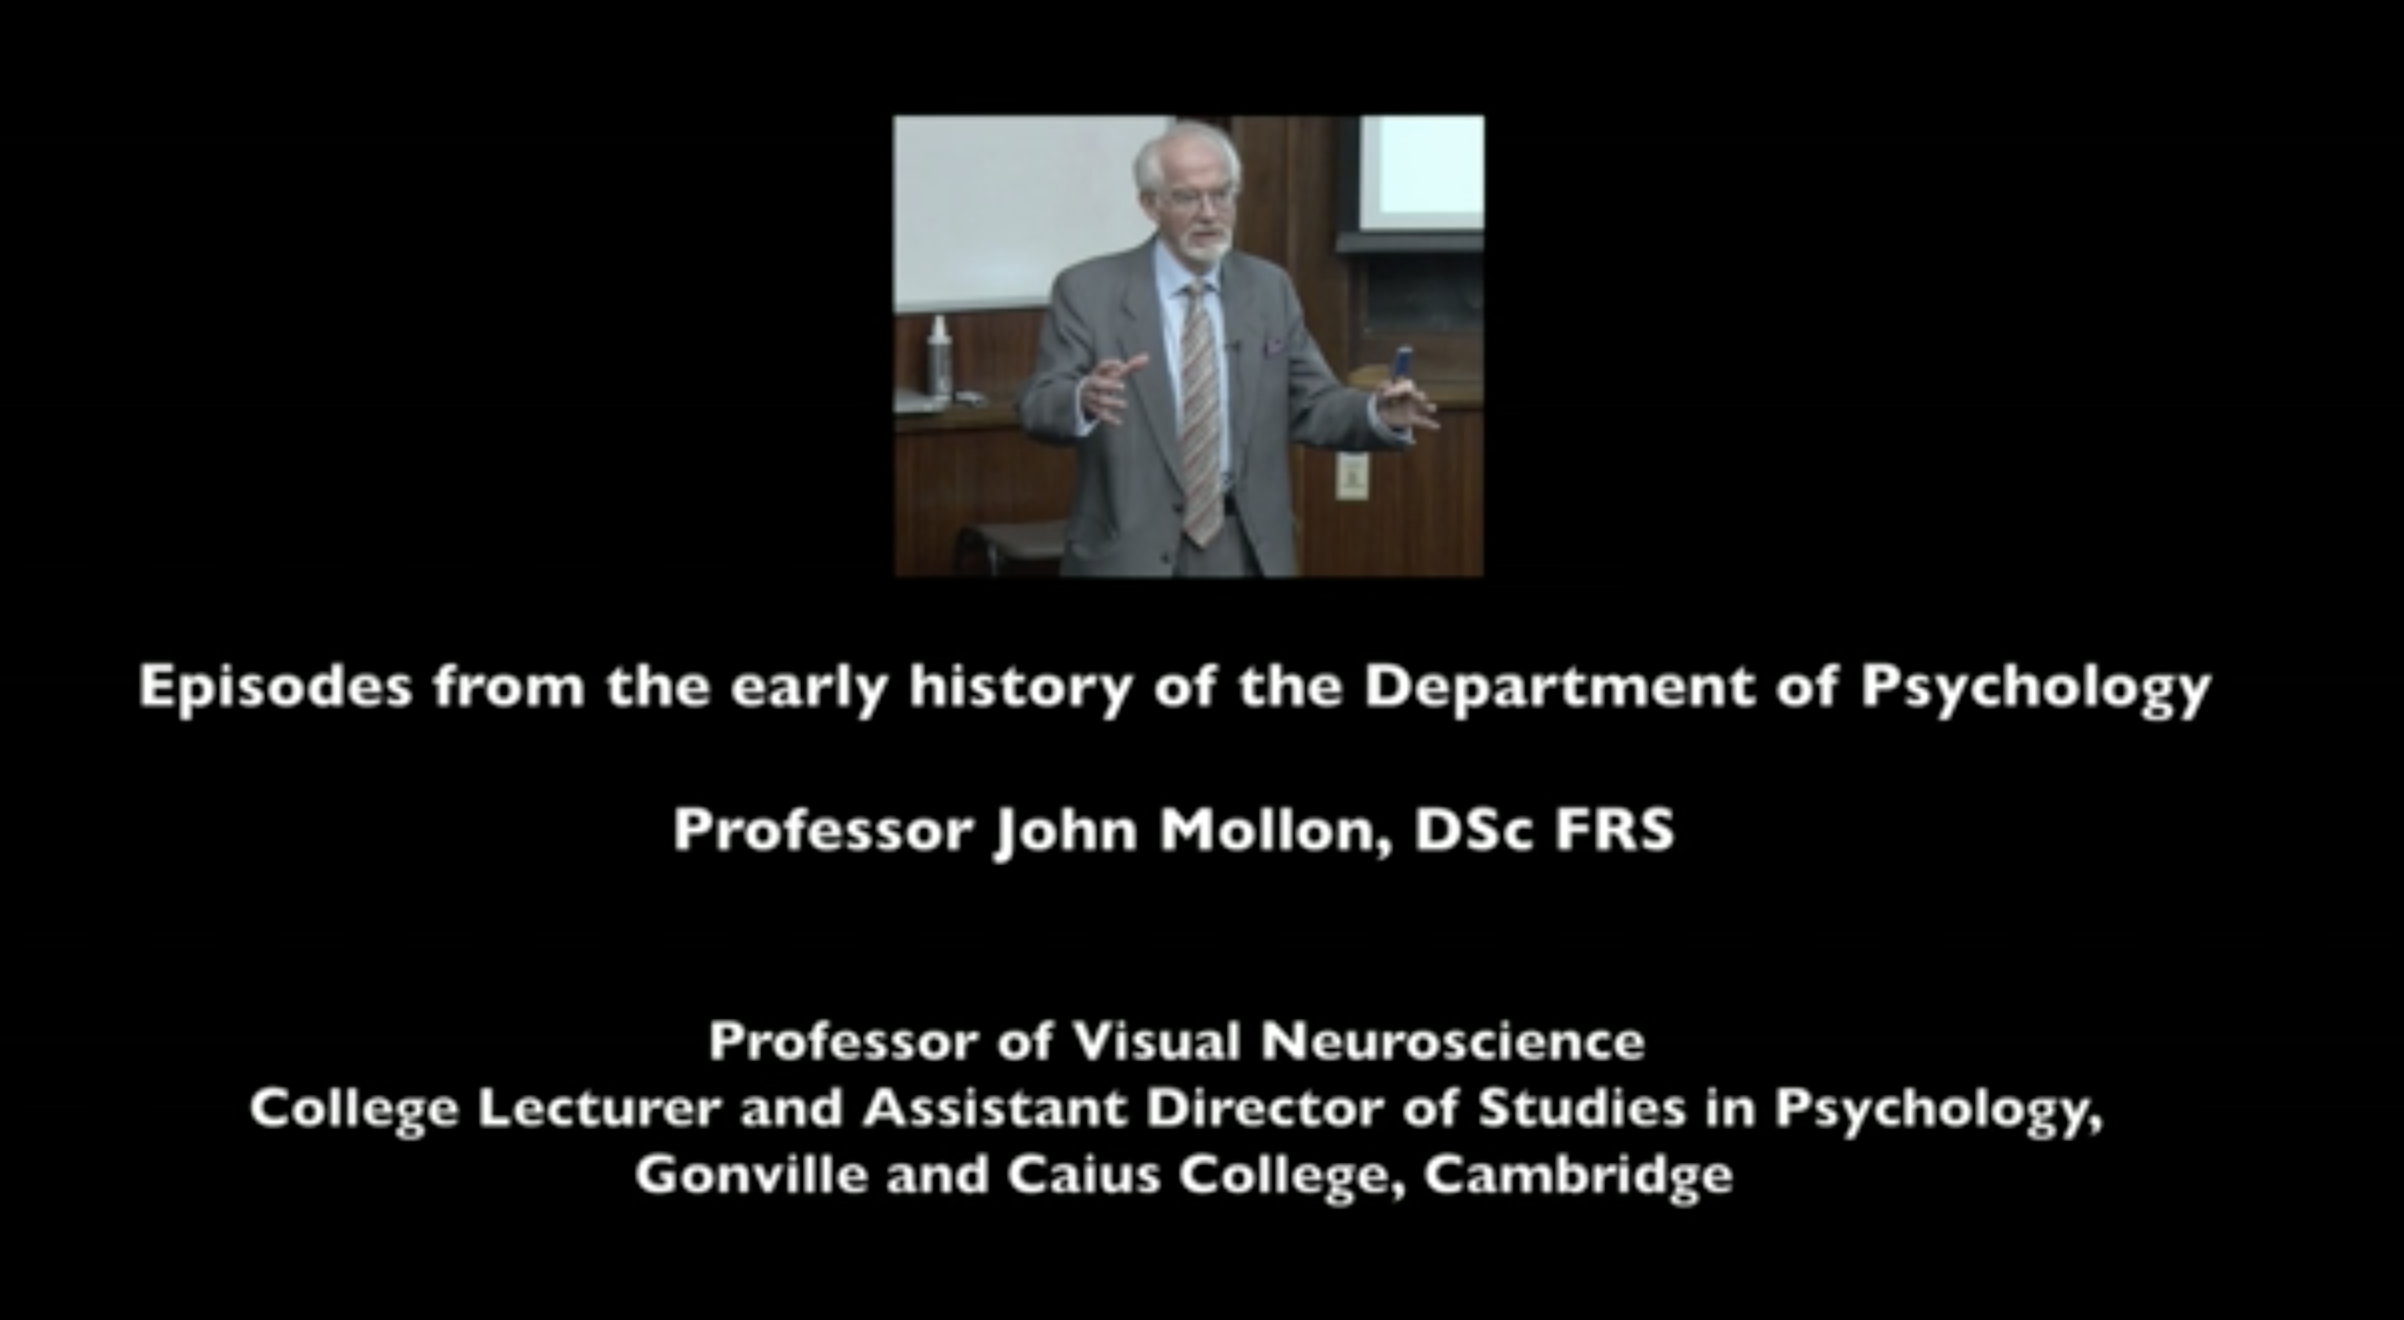 """foot from Prof J. Mollon during talk """"Episodes from the early history of the department of psychology"""""""